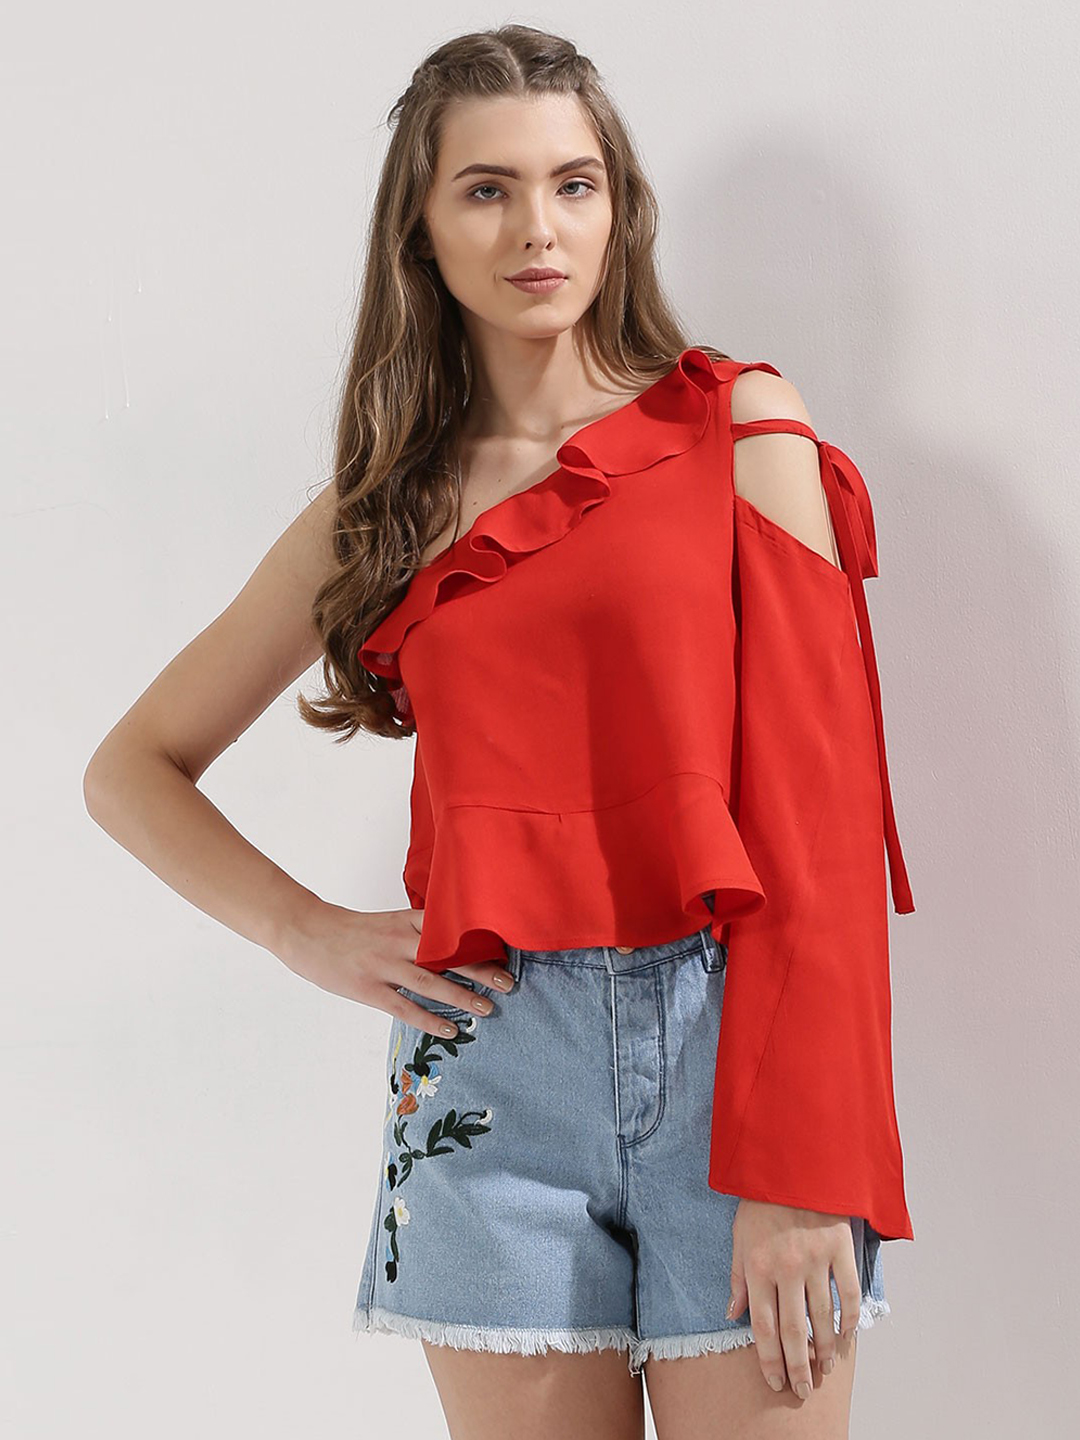 Blue Sequin Red One Shoulder Top With Ruffle Detail 1